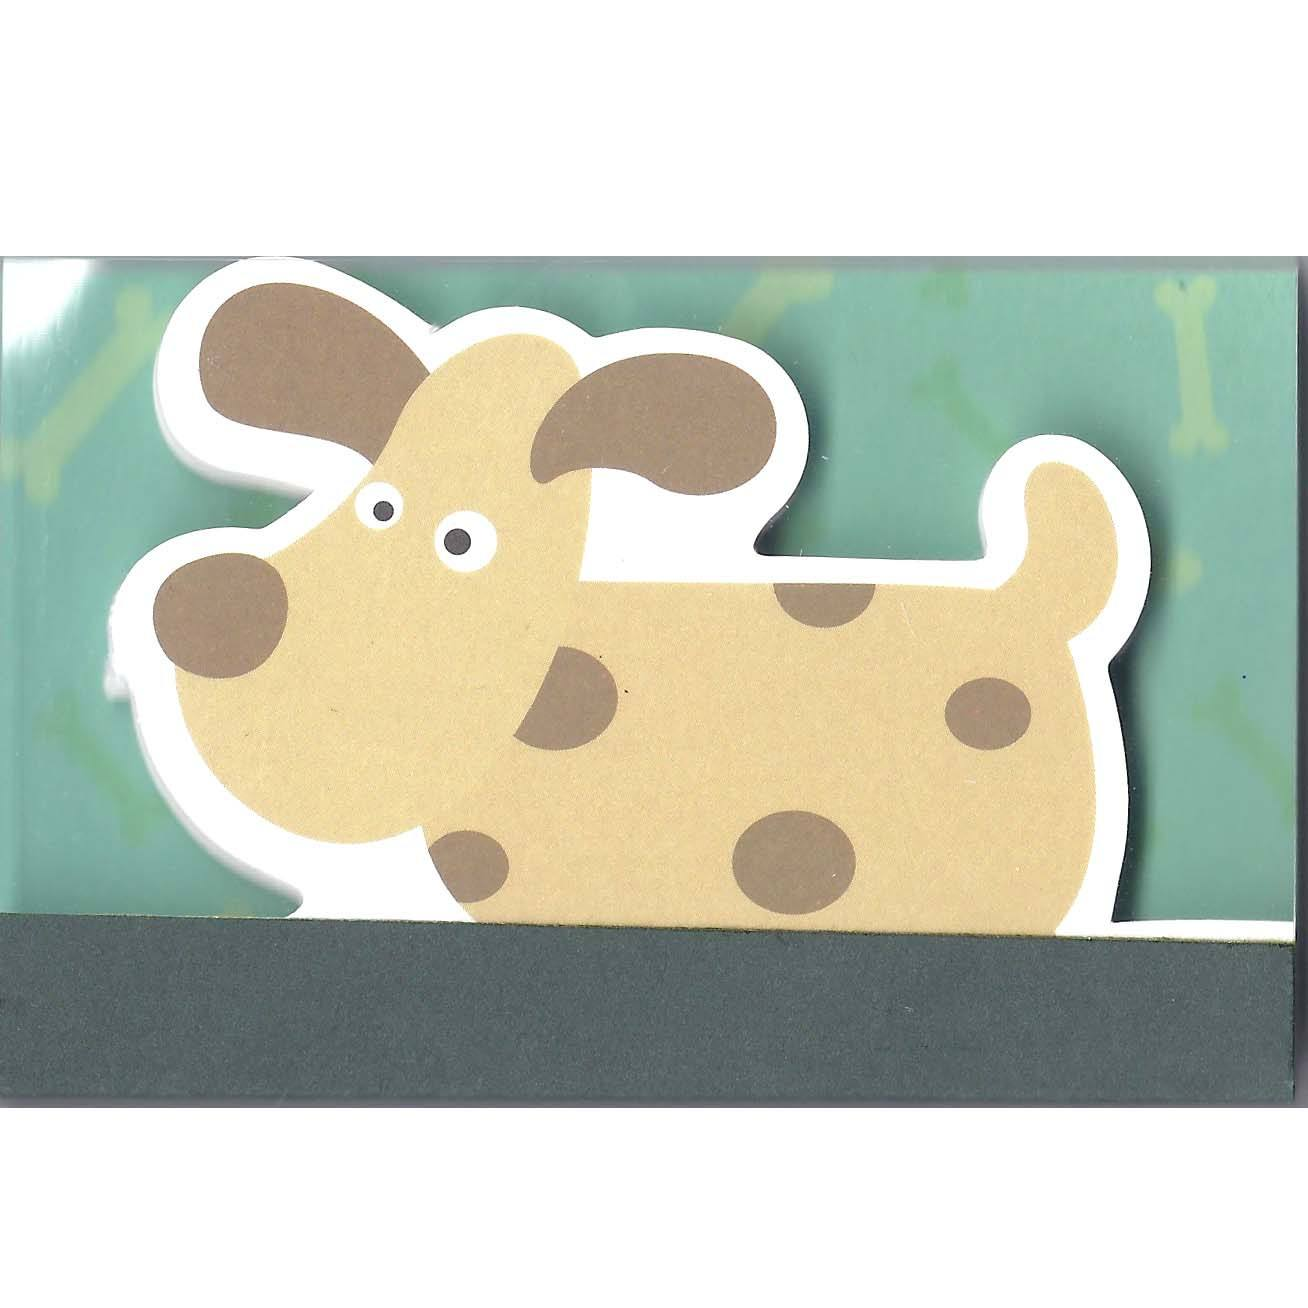 Adorable Puppy Dog Animal Shaped Memo Lined Notepad | 80 Pages